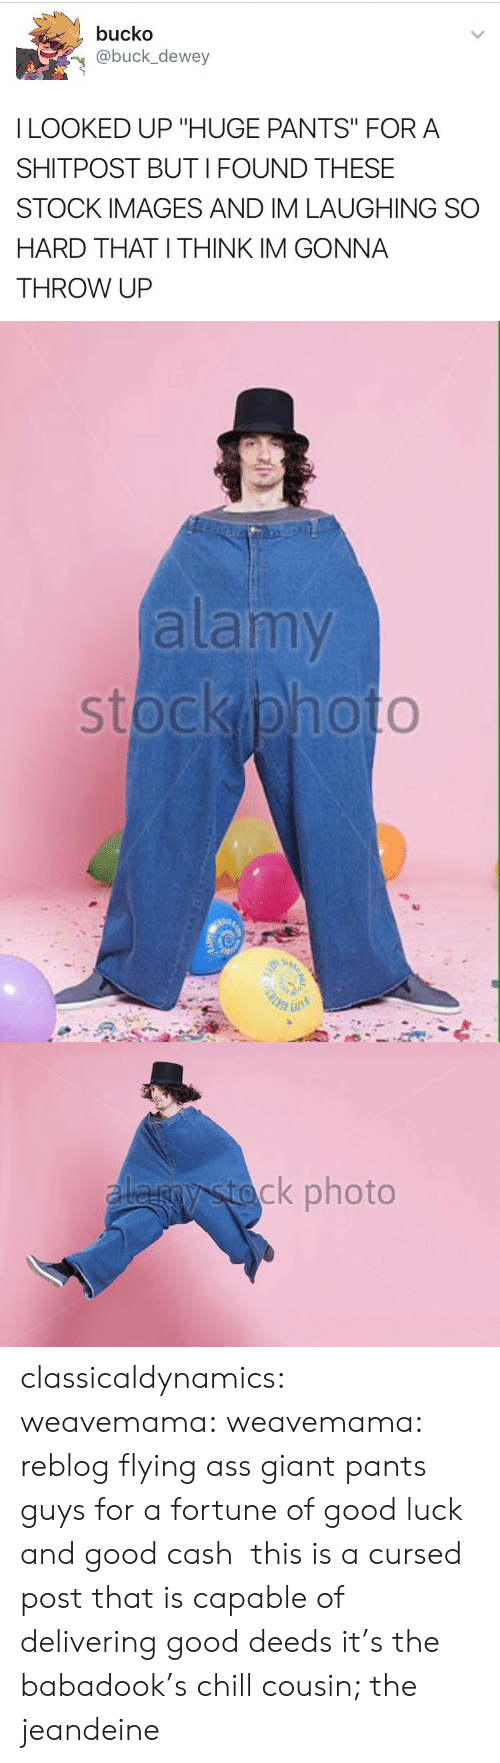 "Ass, Chill, and Dewey: bucko  @buck_dewey  I LOOKED UP ""HUGE PANTS"" FORA  SHITPOST BUTI FOUND THESE  STOCK IMAGES AND IM LAUGHING SO  HARD THAT I THINK IM GONNA  THROW UP   alamy   ck photo classicaldynamics: weavemama:  weavemama:  reblog flying ass giant pants guys for a fortune of good luck and good cash   this is a cursed post that is capable of delivering good deeds  it's the babadook's chill cousin; the jeandeine"